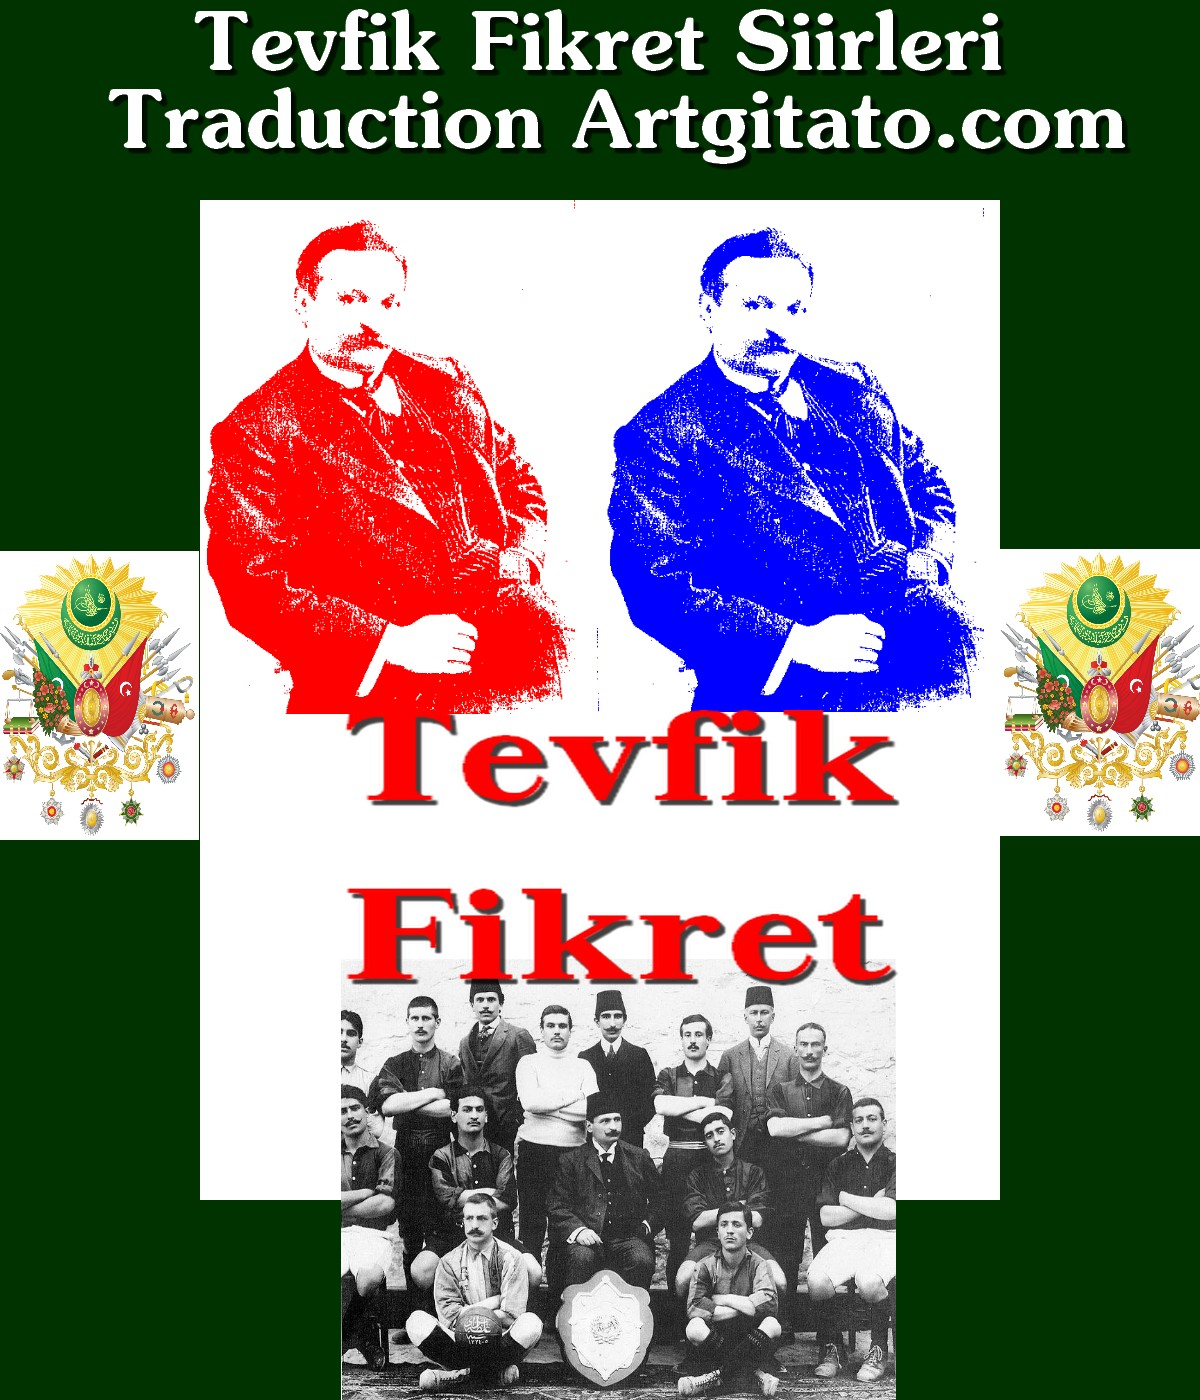 Tevfik Fikret Poesie Artgitato Traduction Poèmes